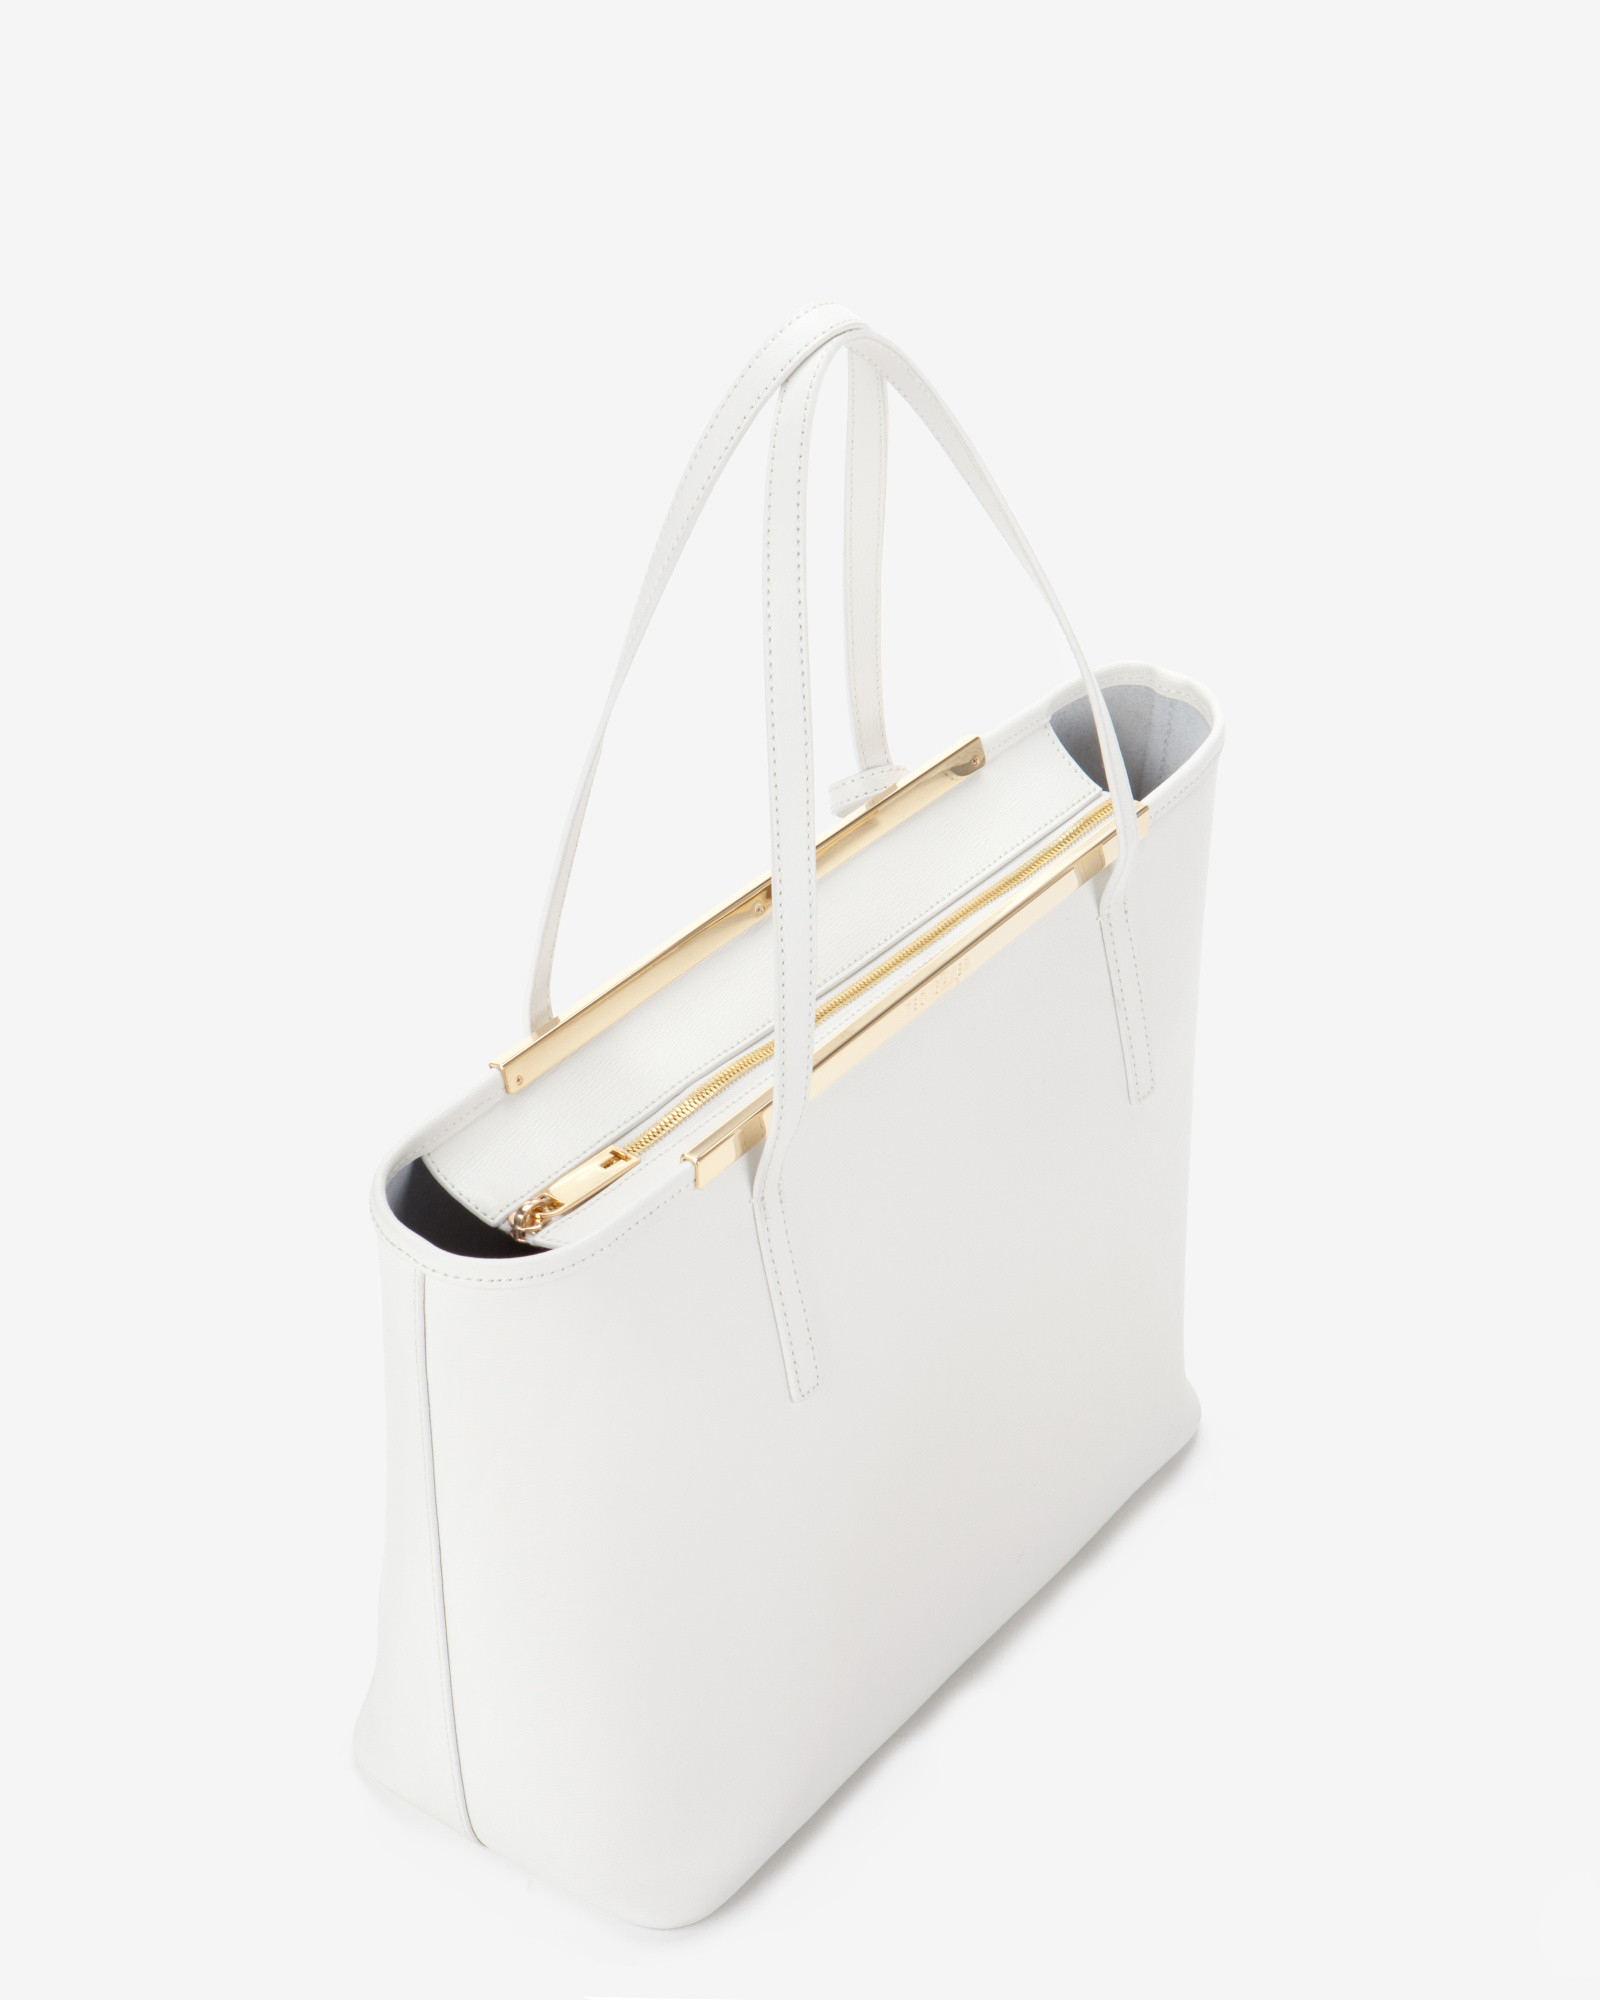 5fa8f0c7b8a2f ... Per Bag In White Lyst. White Leather Ted Baker Purse Best Image Ccdbb